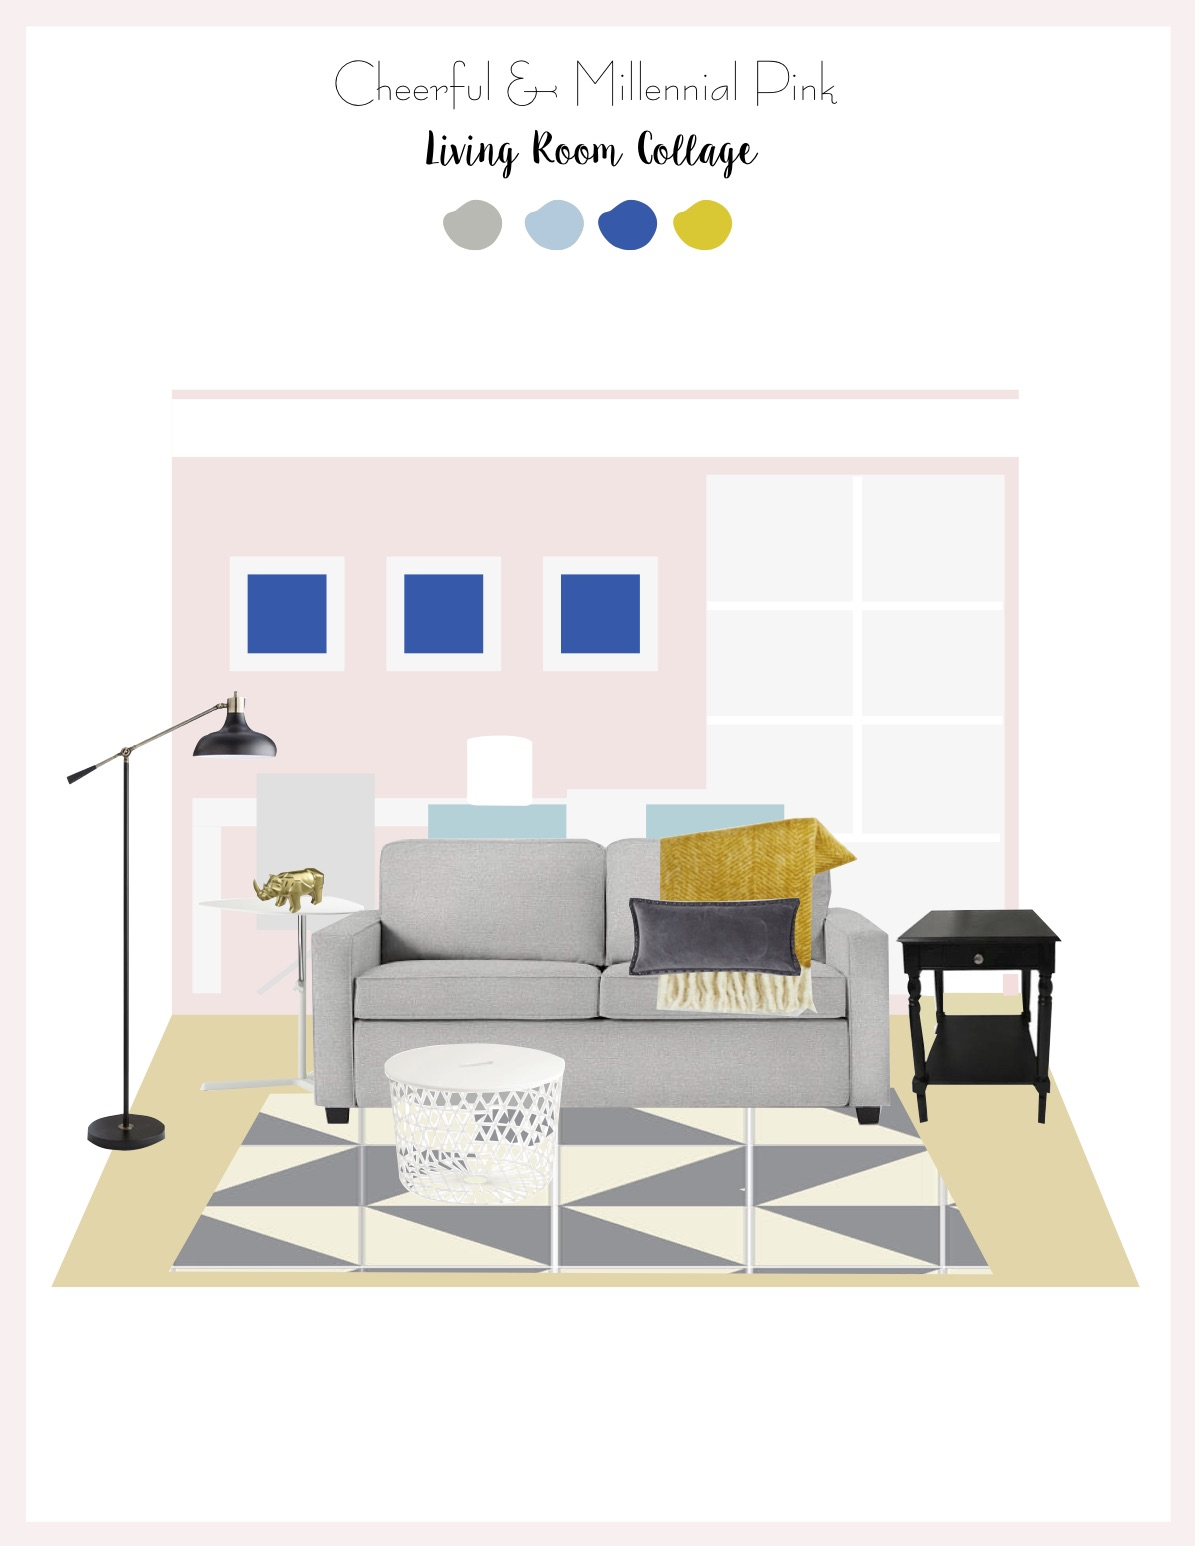 My Living Room Design: Cheerful & Millennial Pink